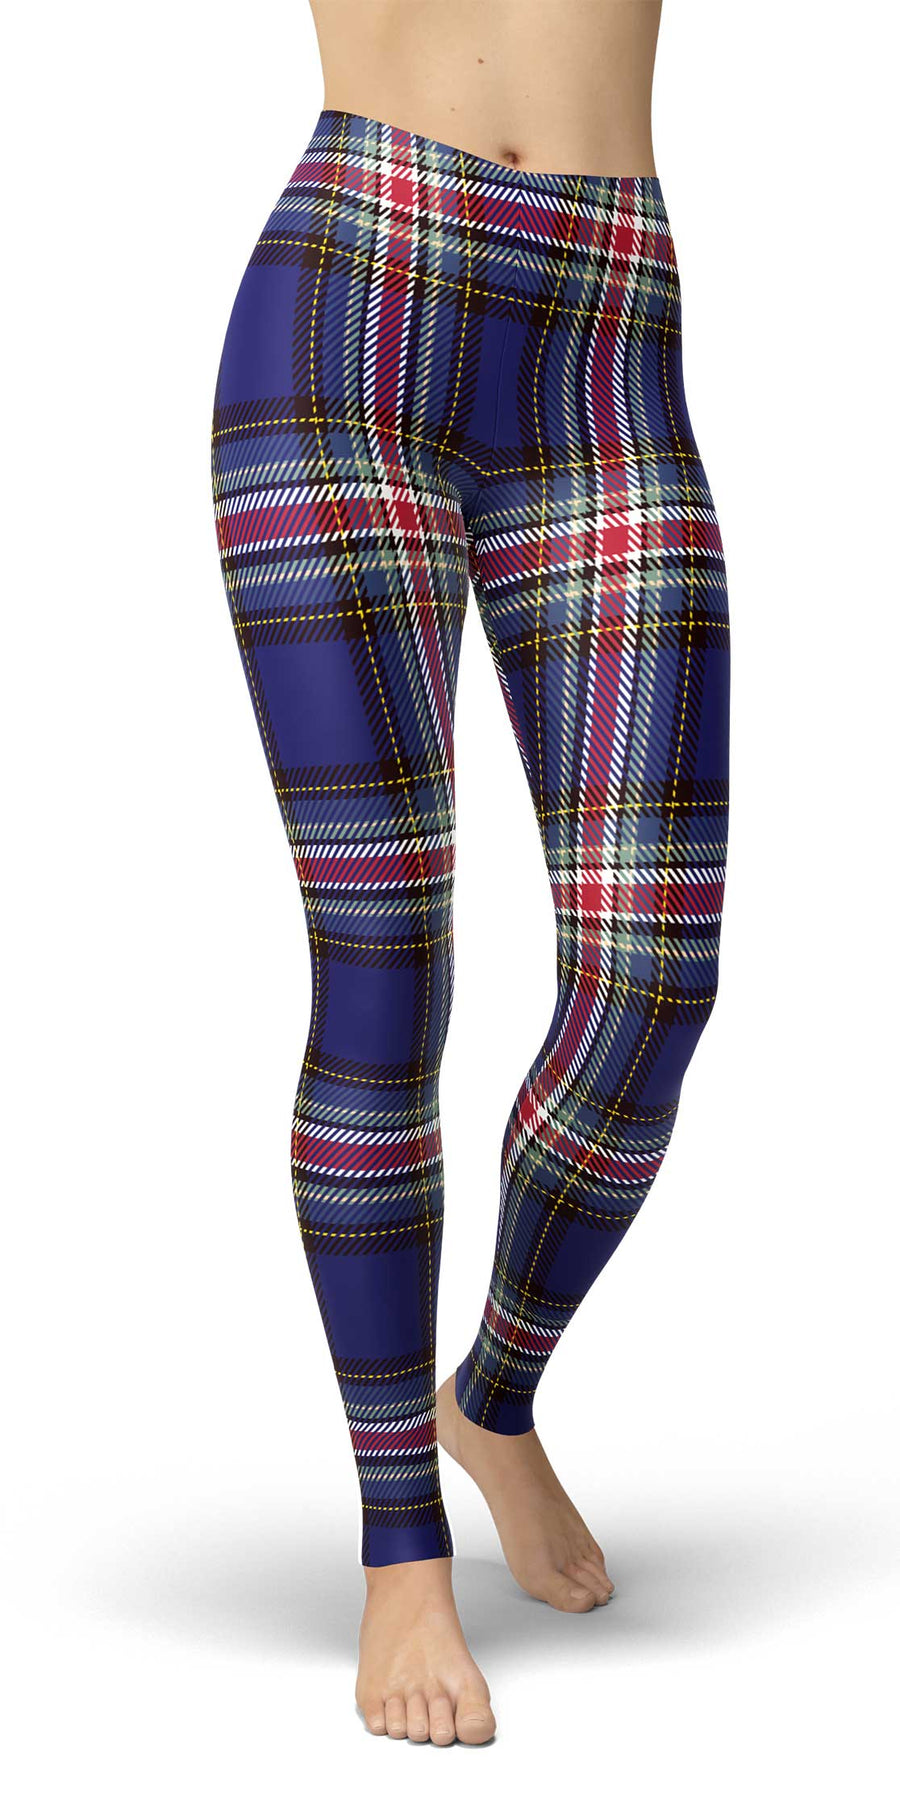 Blue Tartan Irish Leggings